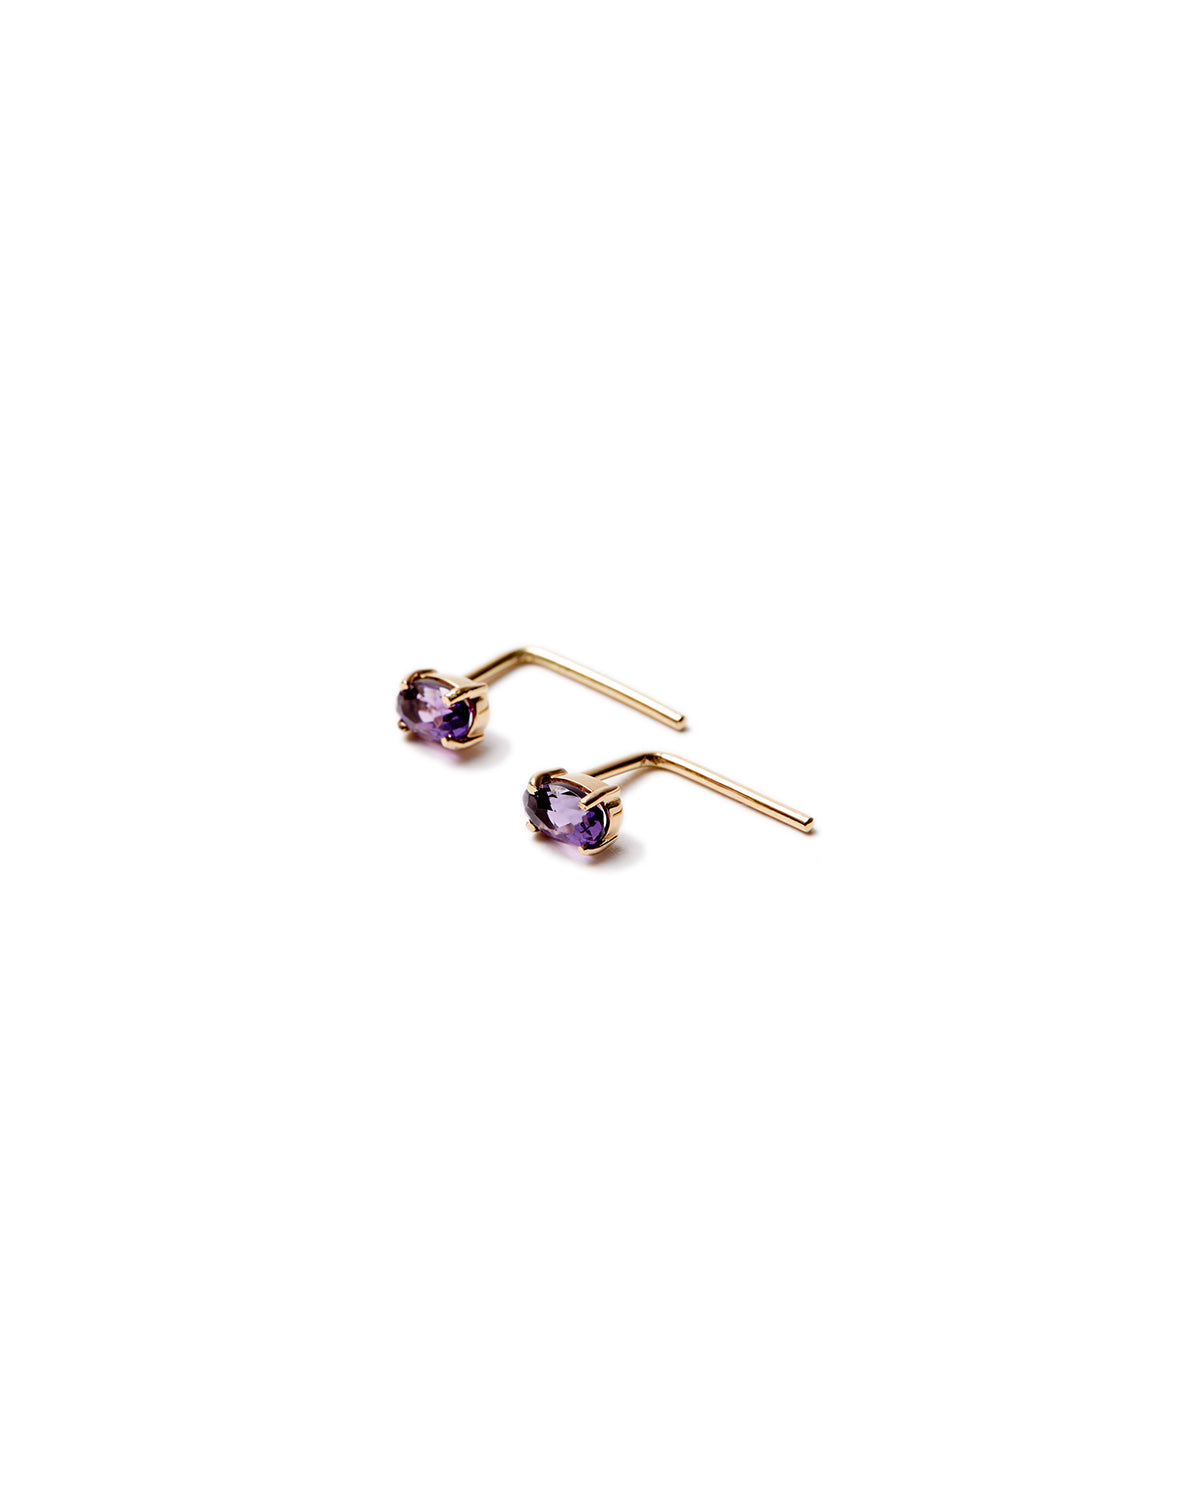 Amethyst with stone earrings